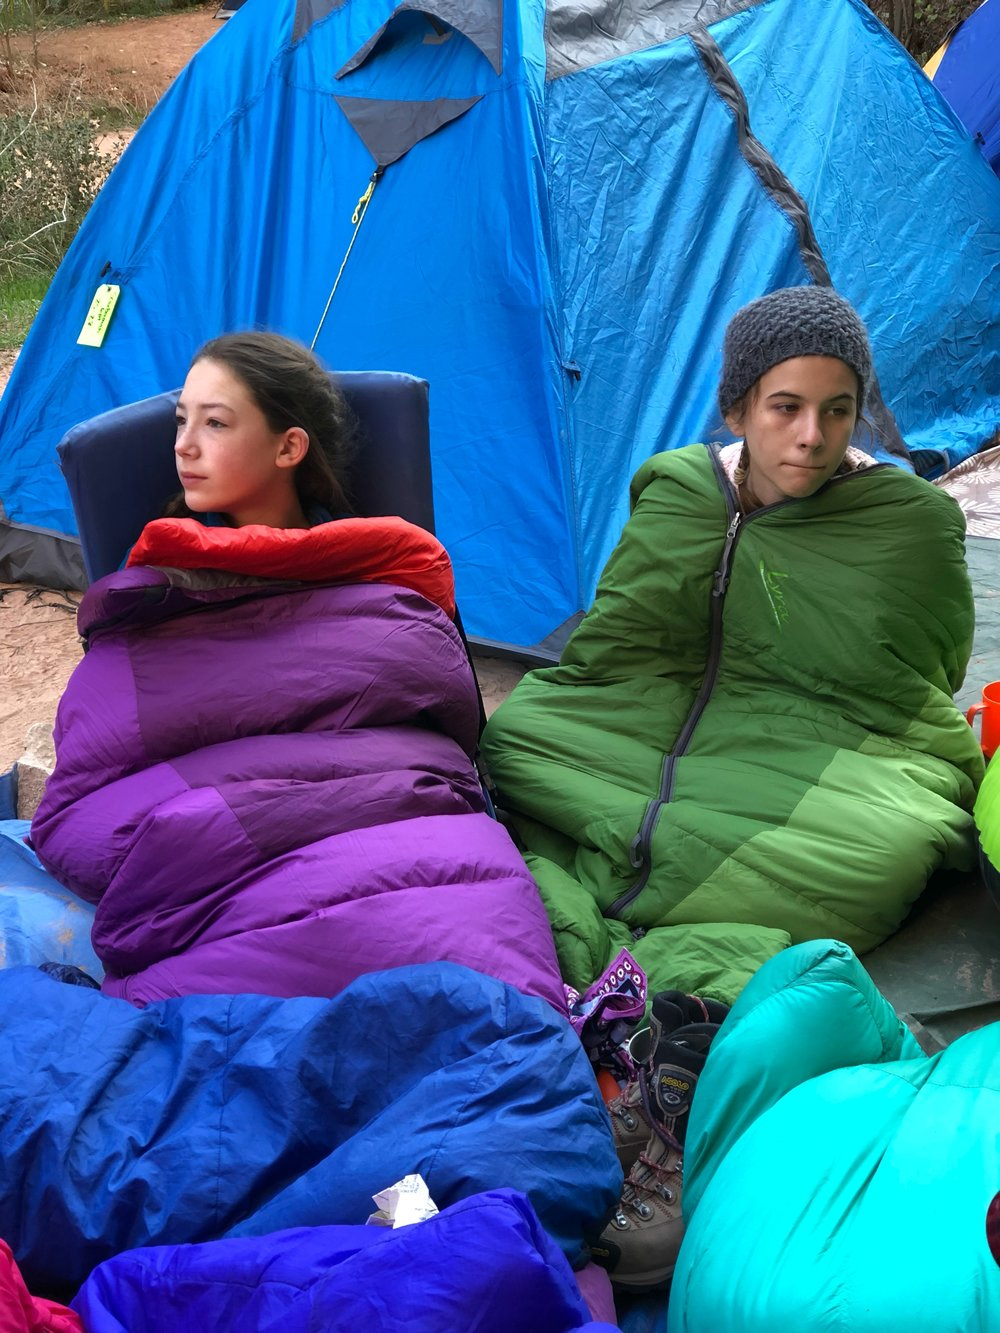 chilly-morning-sleeping-bags-campsite